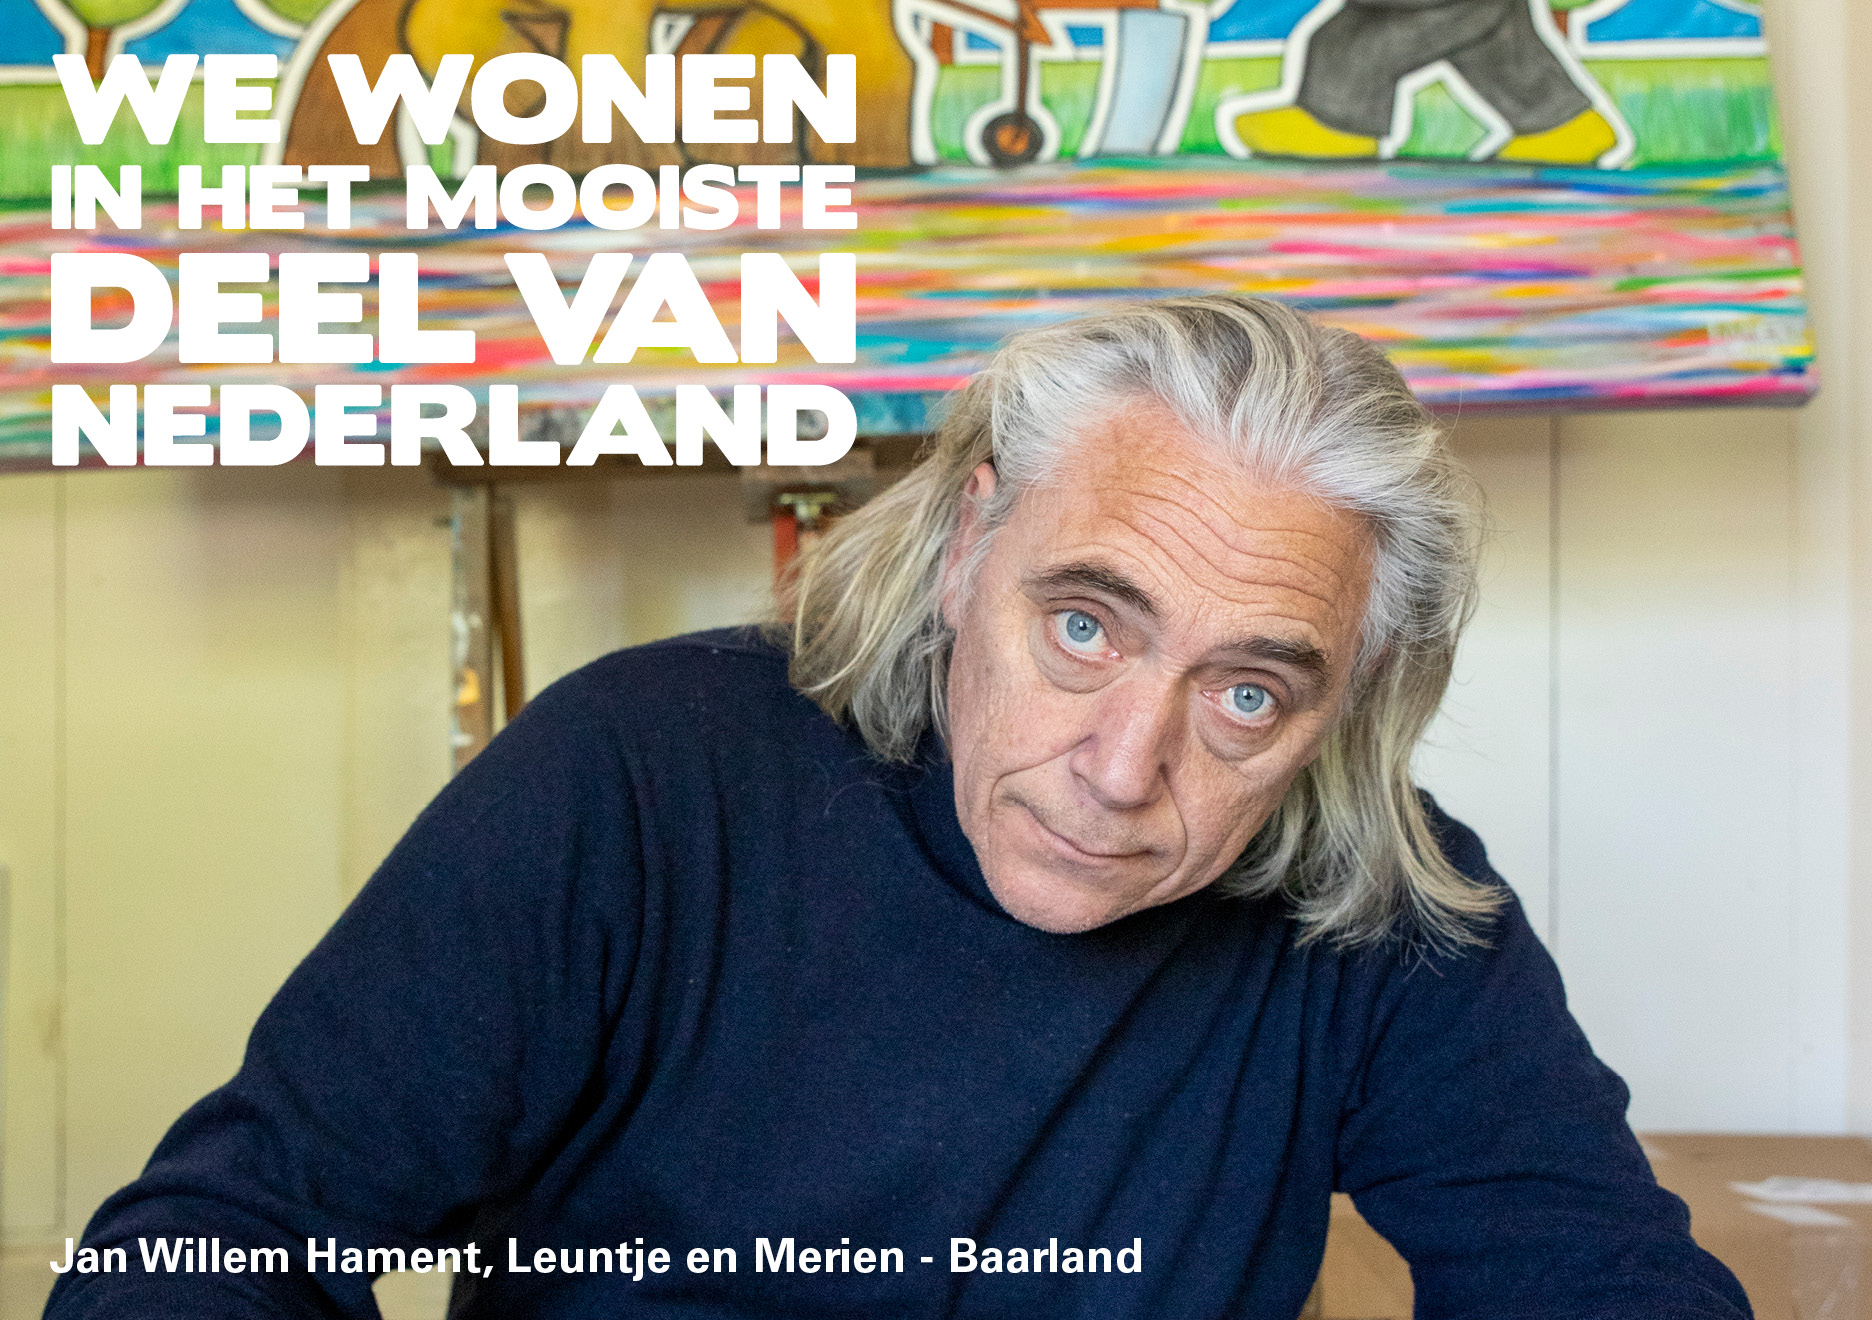 Jan Willem Hament - Leuntje en Merien